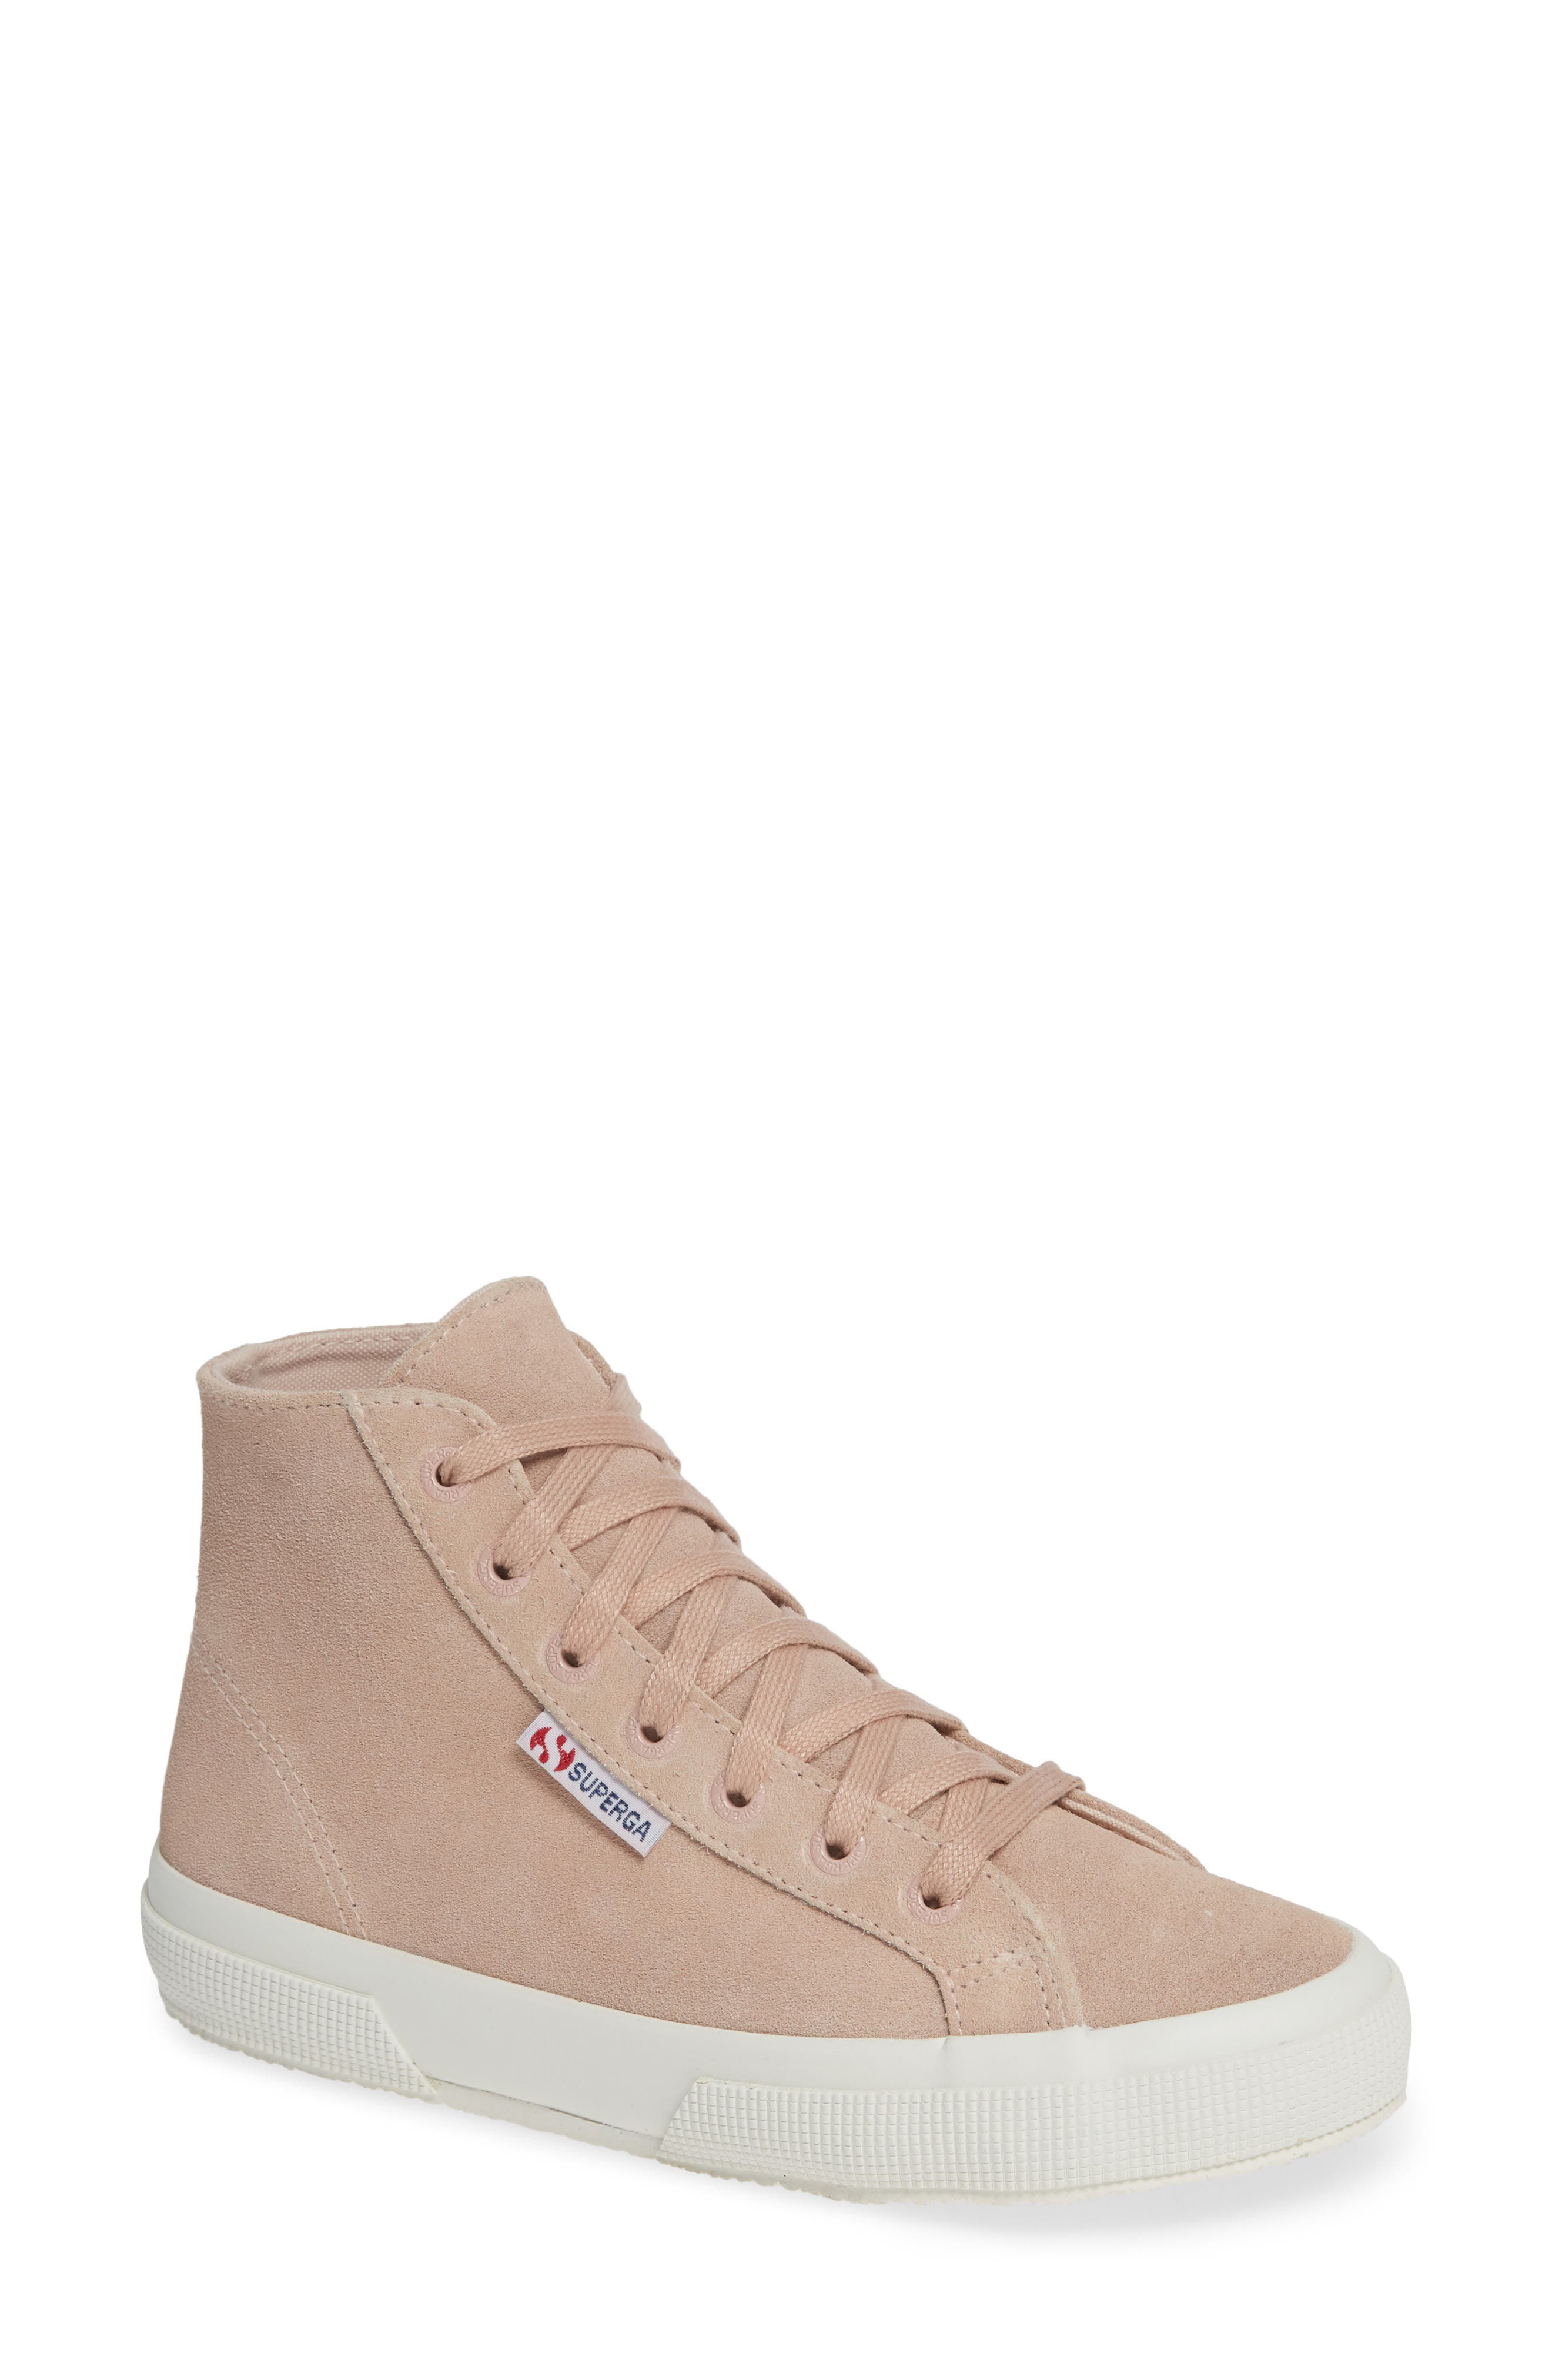 2795 High Top Sneaker,                             Main thumbnail 1, color,                             ROSE SUEDE